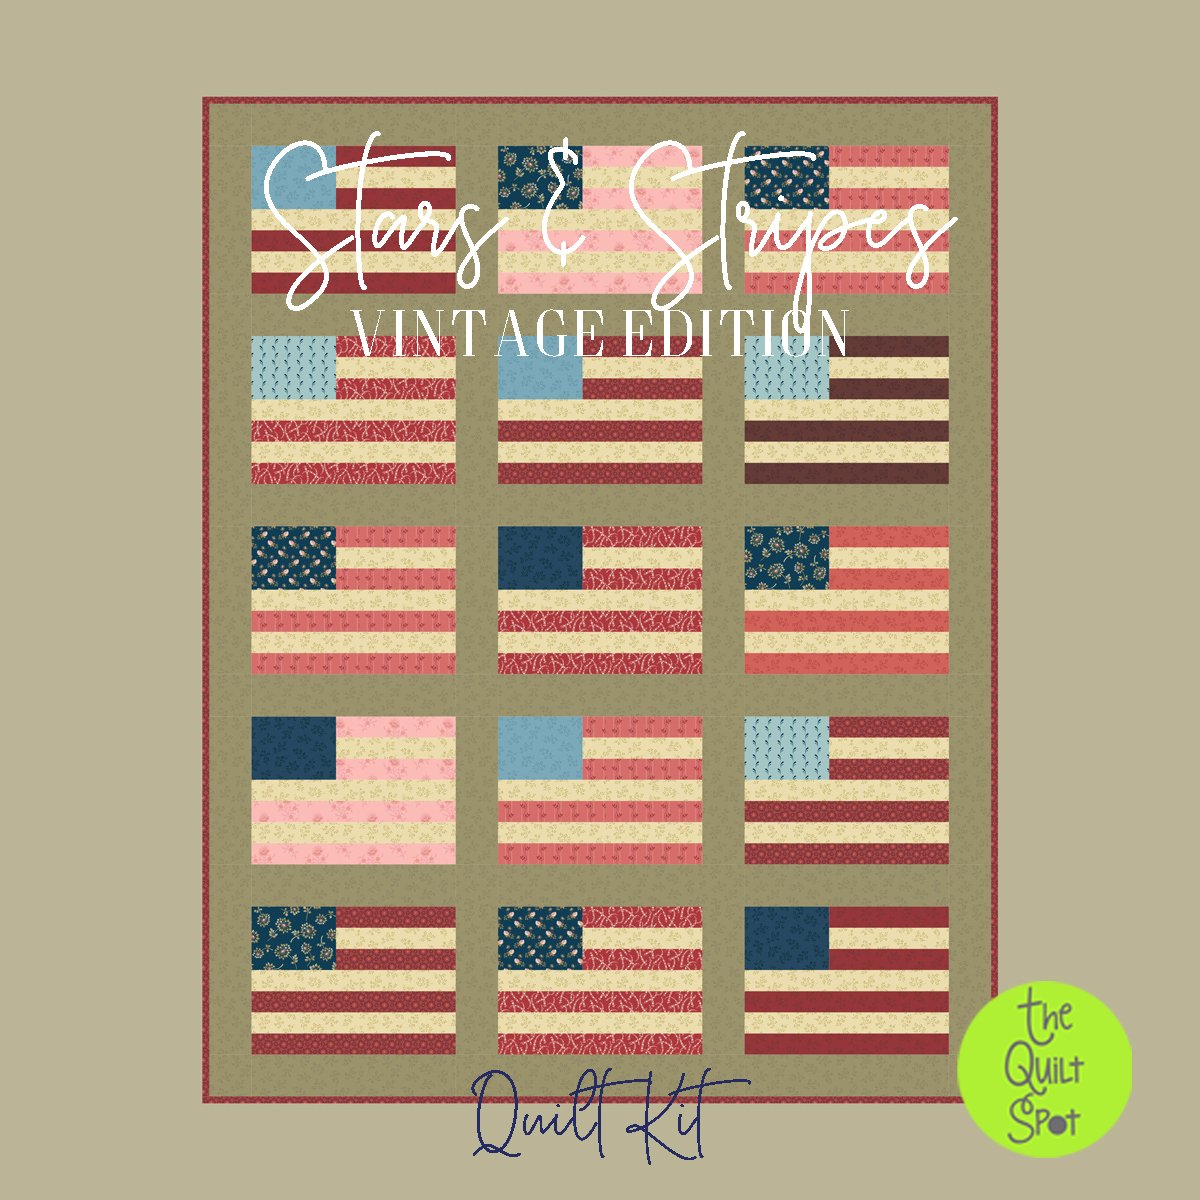 Stars and Stripes Vintage Edition Quilt Kit featuring Laundry Basket Quilts